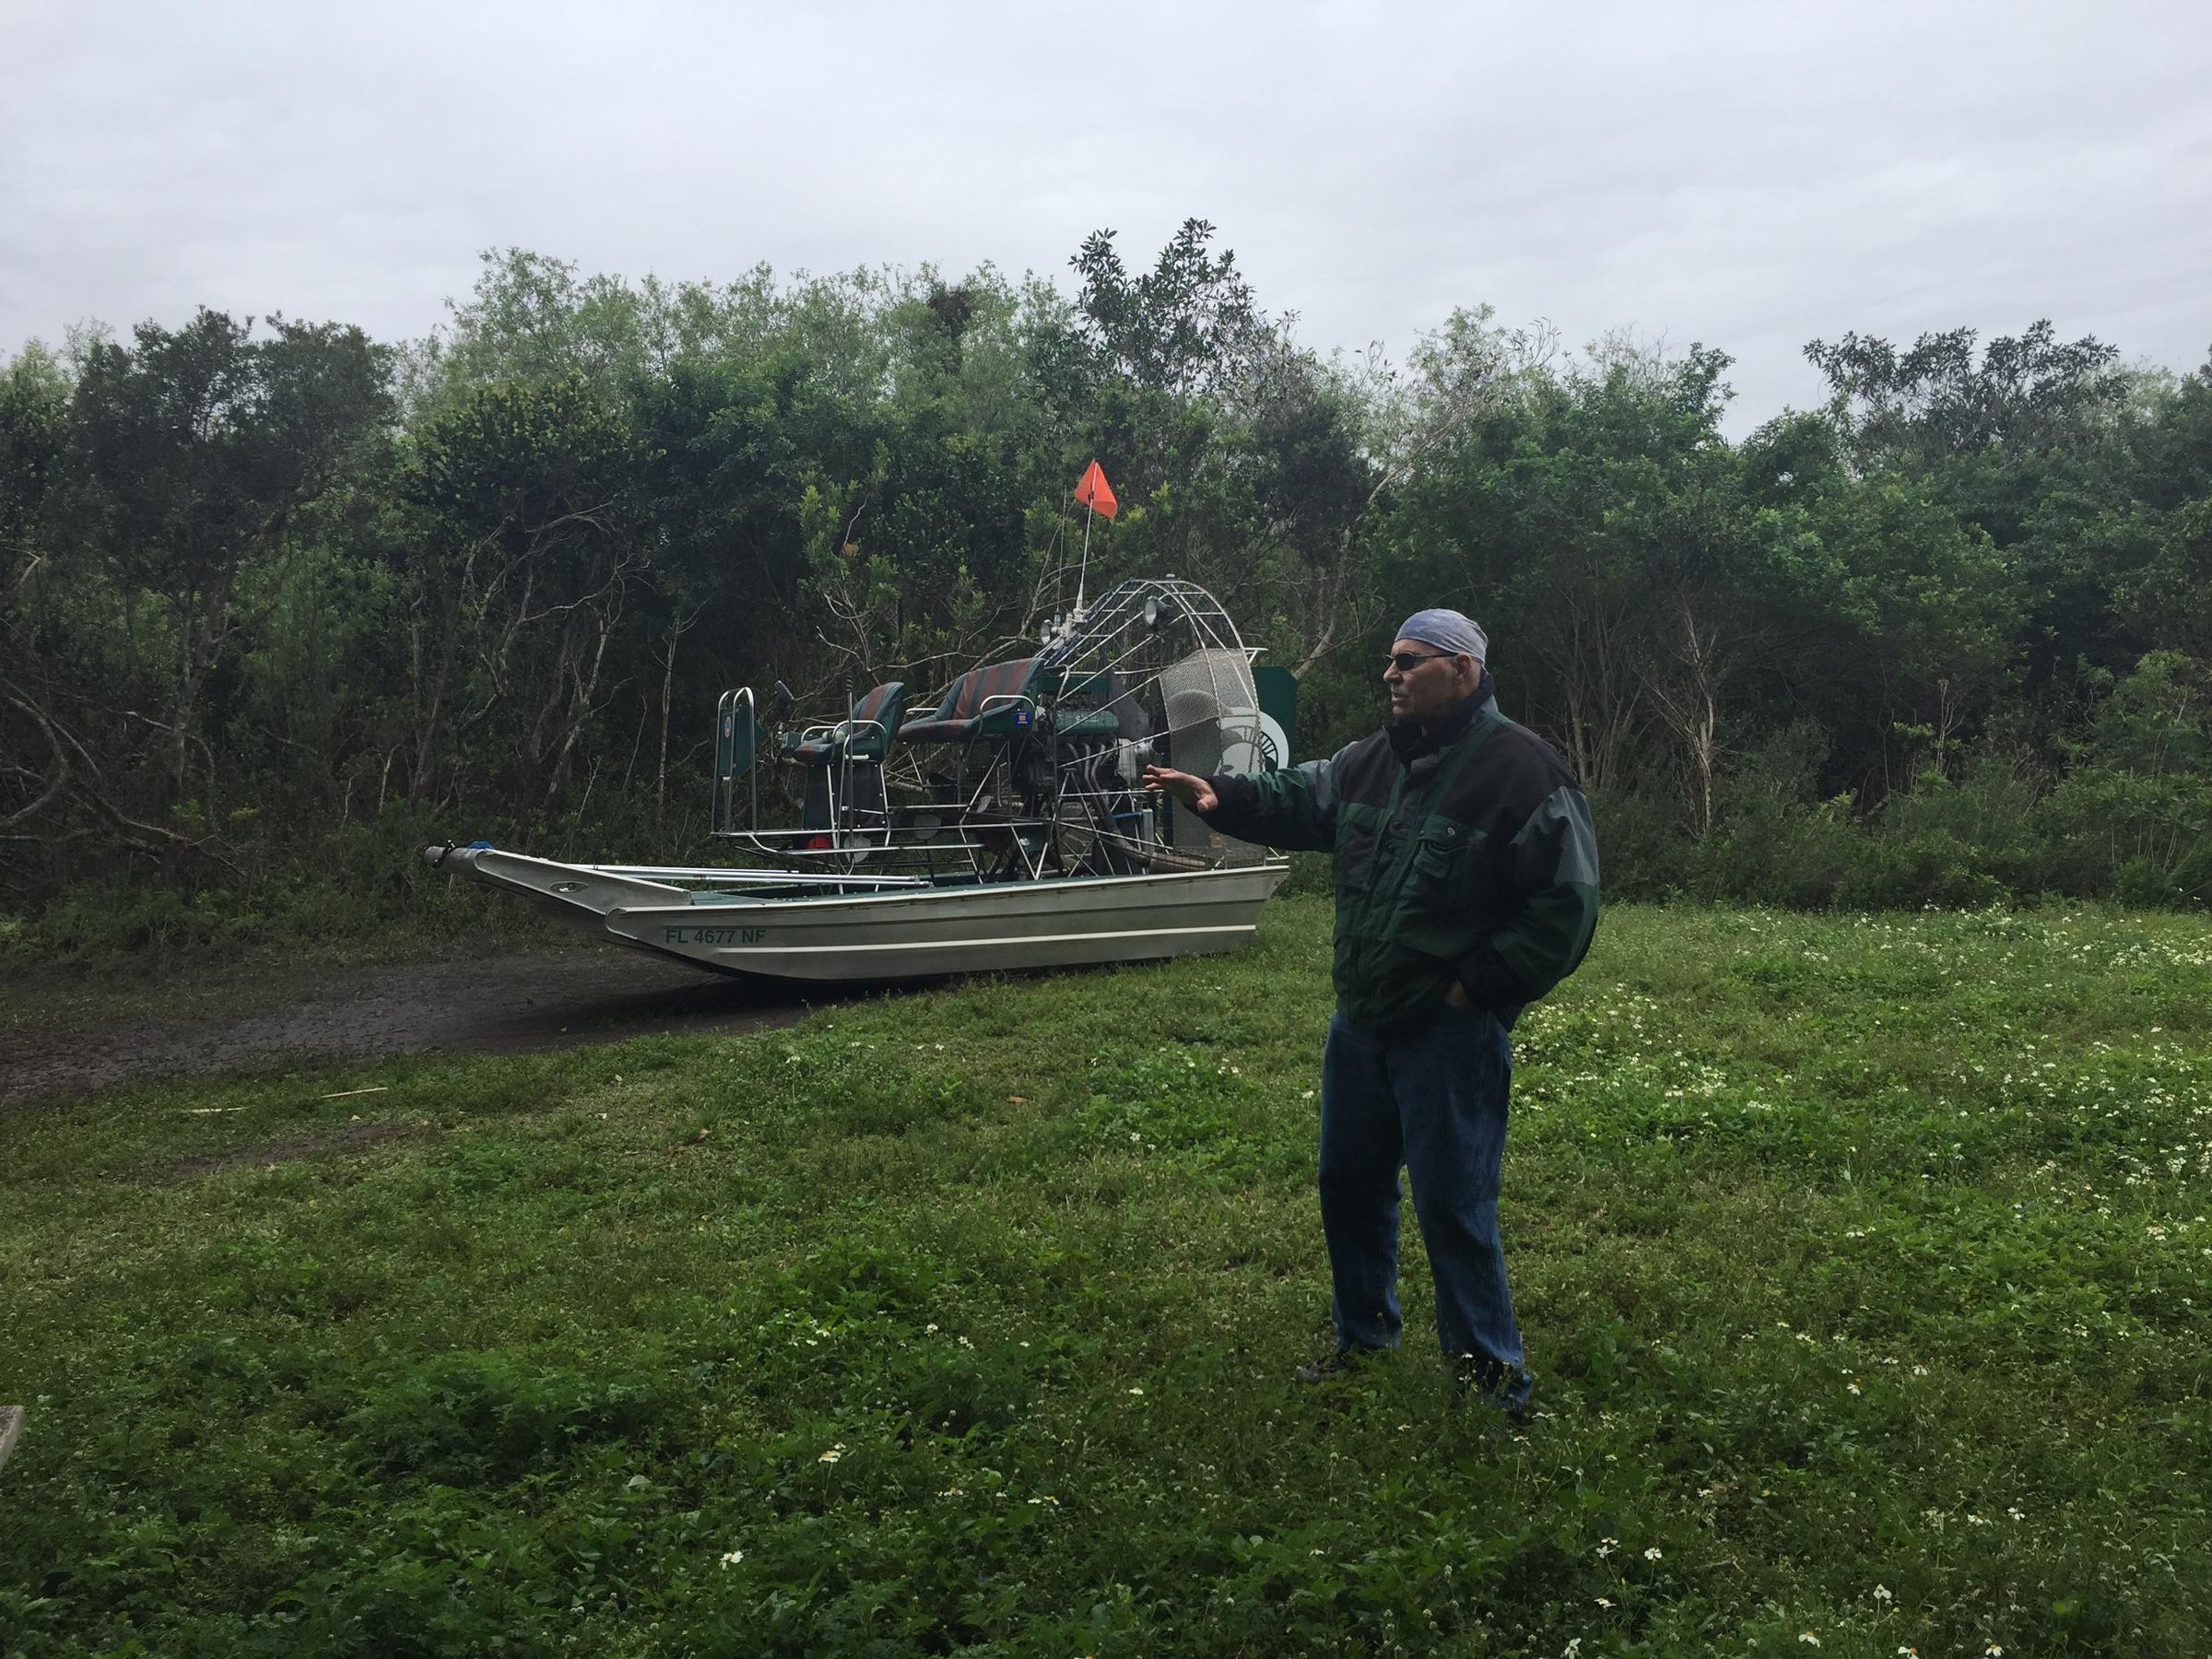 Carter Burrus explores the East Everglades Expansion Area. The park is phasing out private airboats here. Burrus and the Airboat Association of Florida hope to change the rules so future generations can still use private airboats. Photo by Topher Forhecz.  Link to post at WGCU .